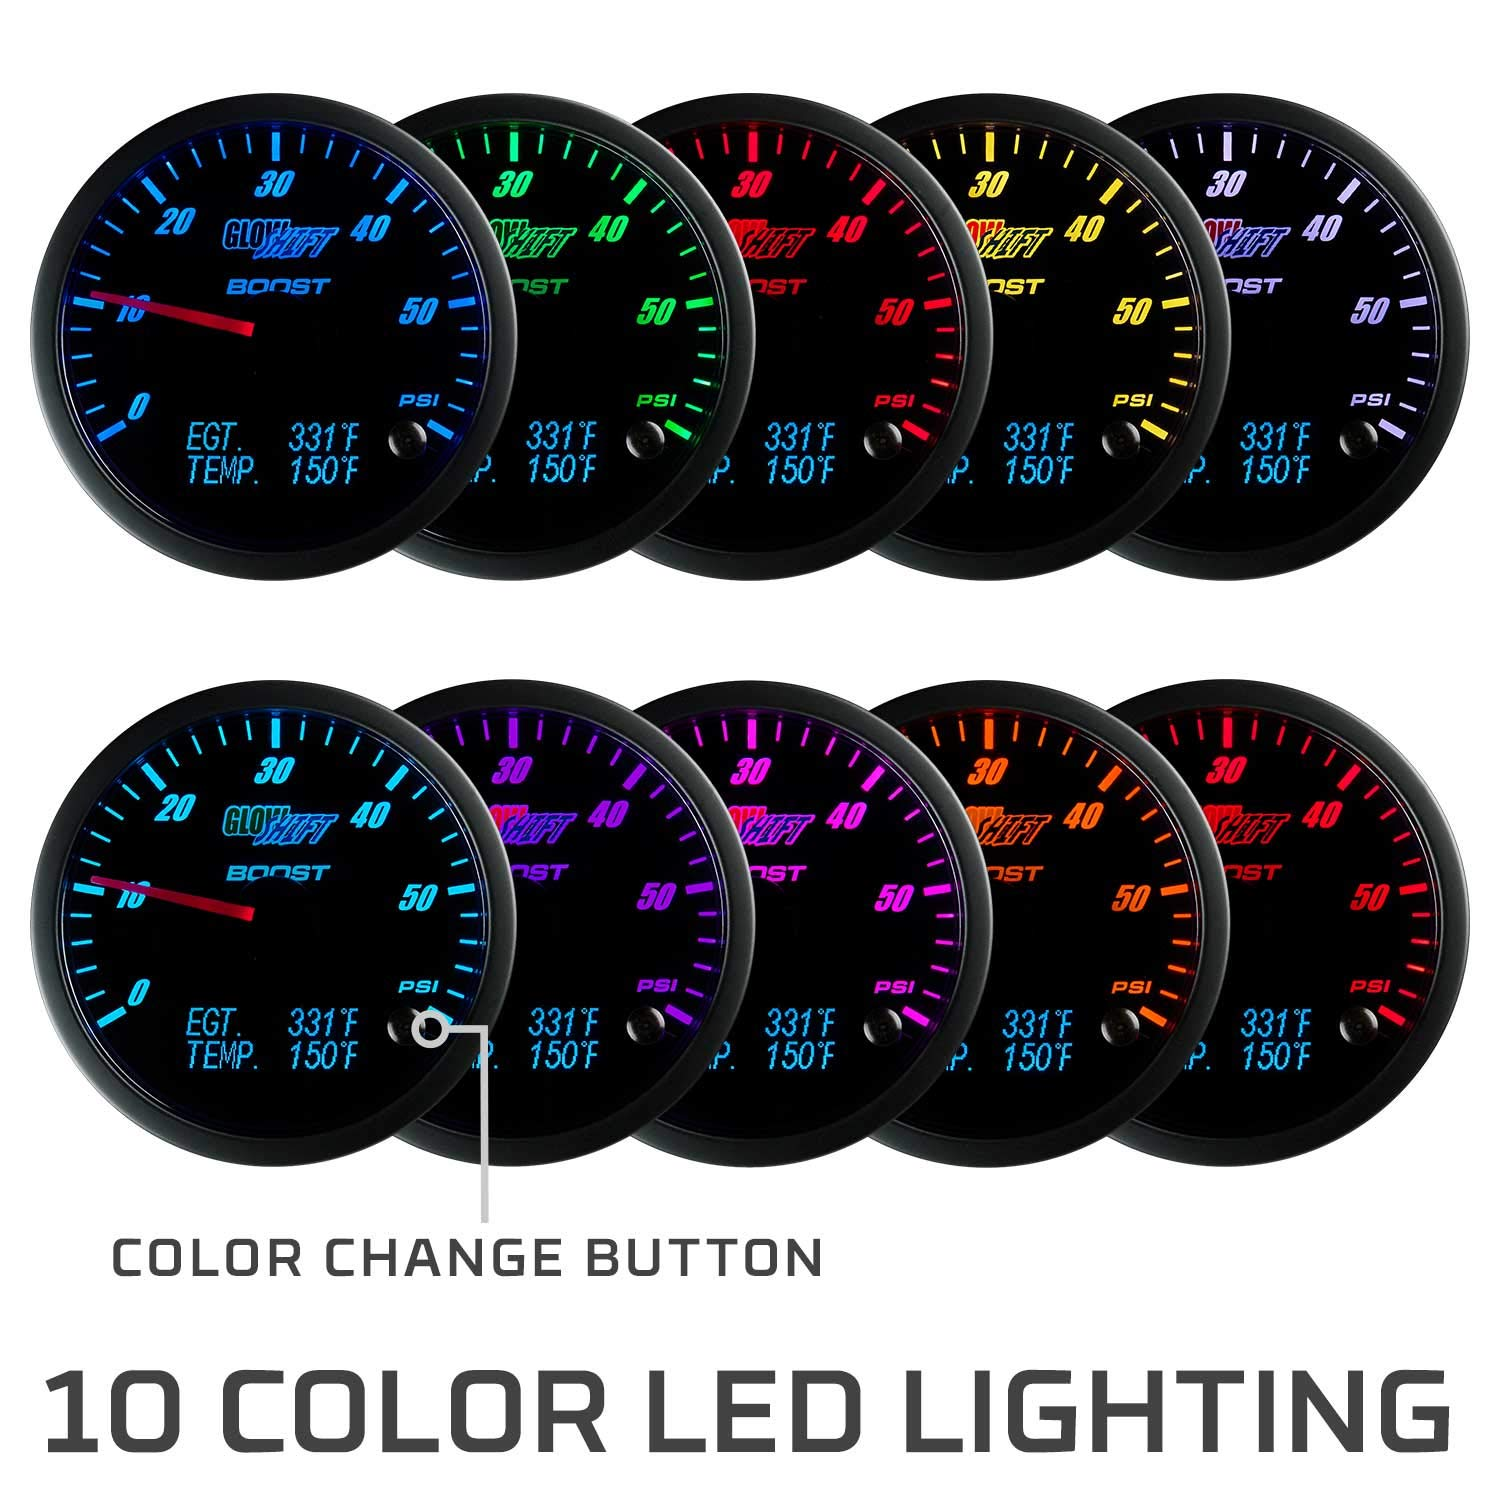 GlowShift 3in1 Analog 1500 F Pyrometer Exhaust Gas Temp EGT Gauge Kit with Digital 60 PSI Boost & 300 F Temperature Readings - 10 Selectable LED Colors - Black Dial - Clear Lens - 2-3/8'' 60mm by GlowShift (Image #6)